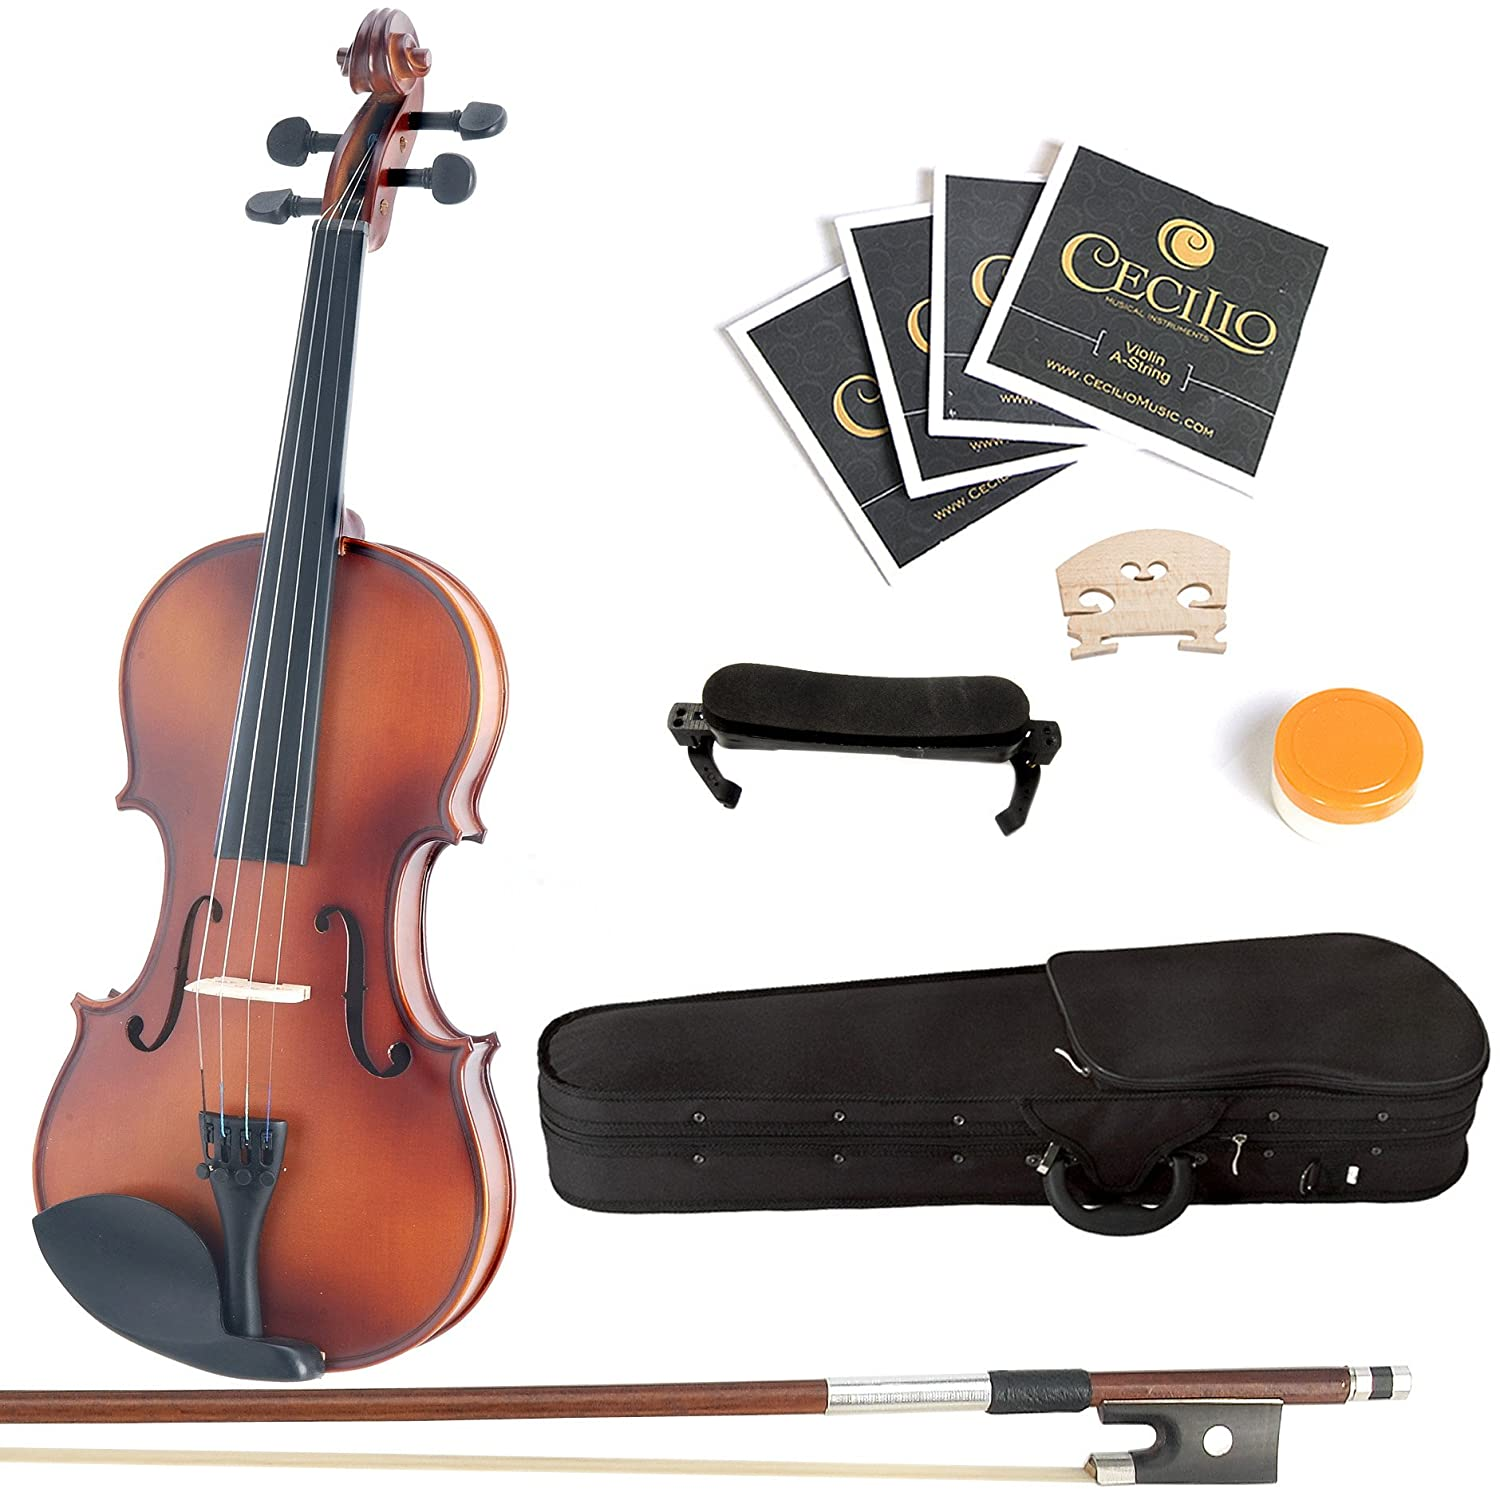 Mendini 1/10 MV300 Solid Wood Satin Antique Violin with Hard Case, Shoulder Rest, Bow, Rosin and Extra Strings 1/10MV300